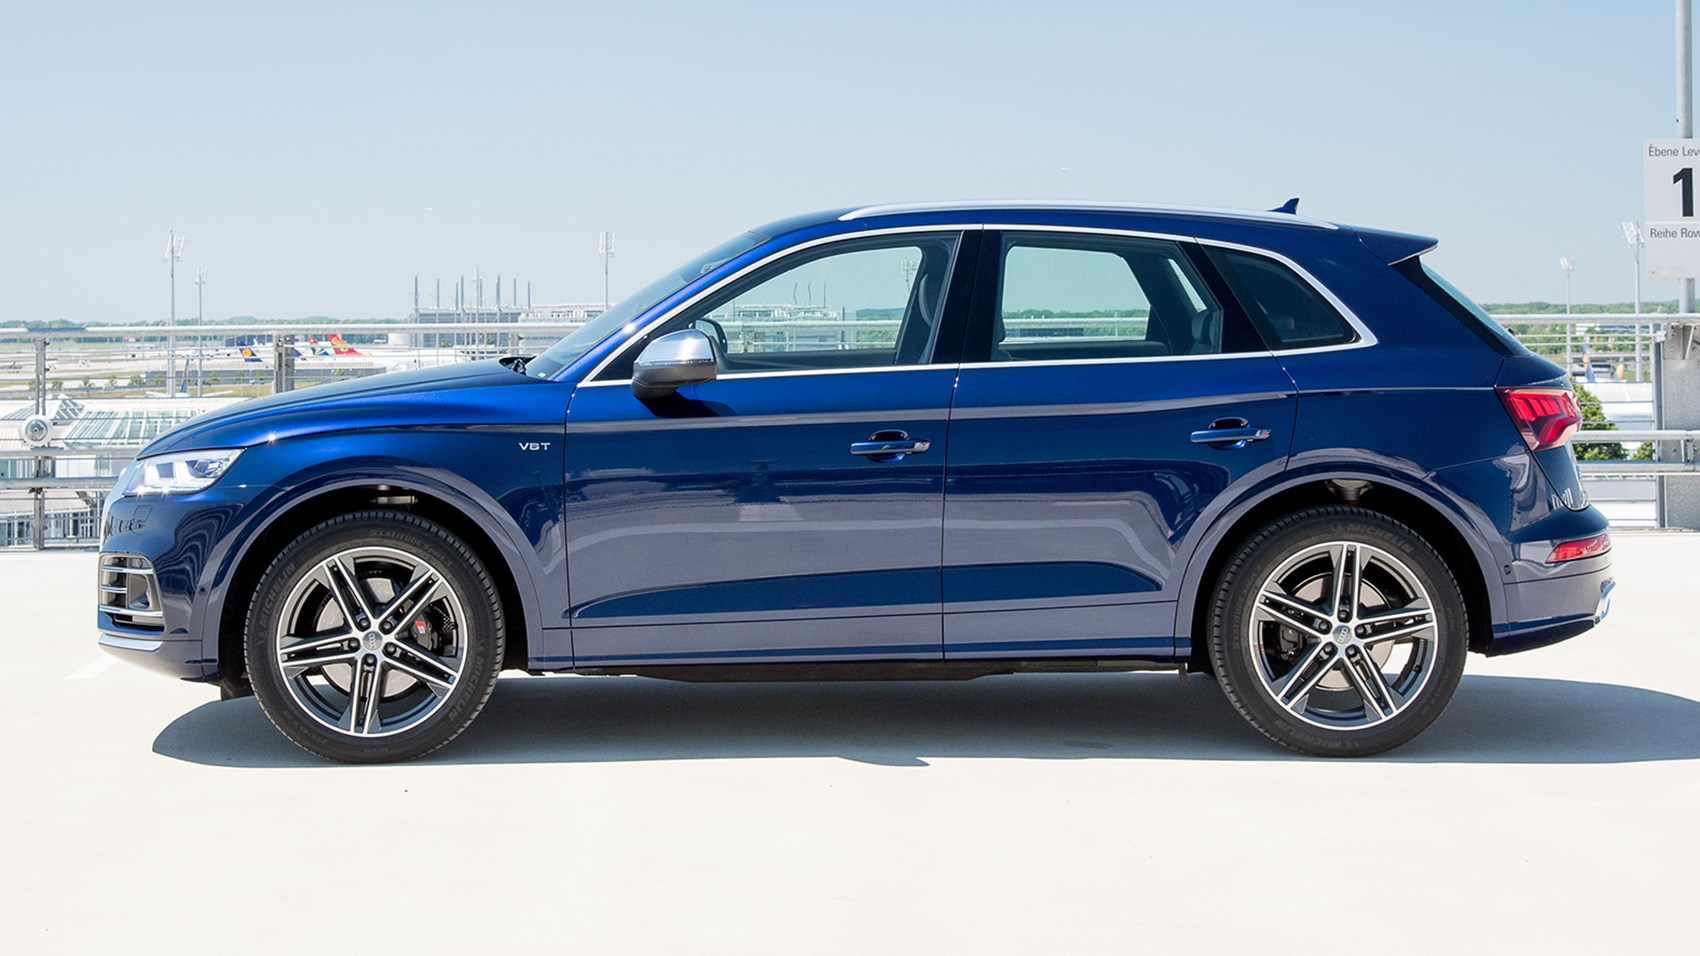 Audi Q5 Lease >> New Audi SQ5 (2017) review: the crossover benchmark | CAR Magazine